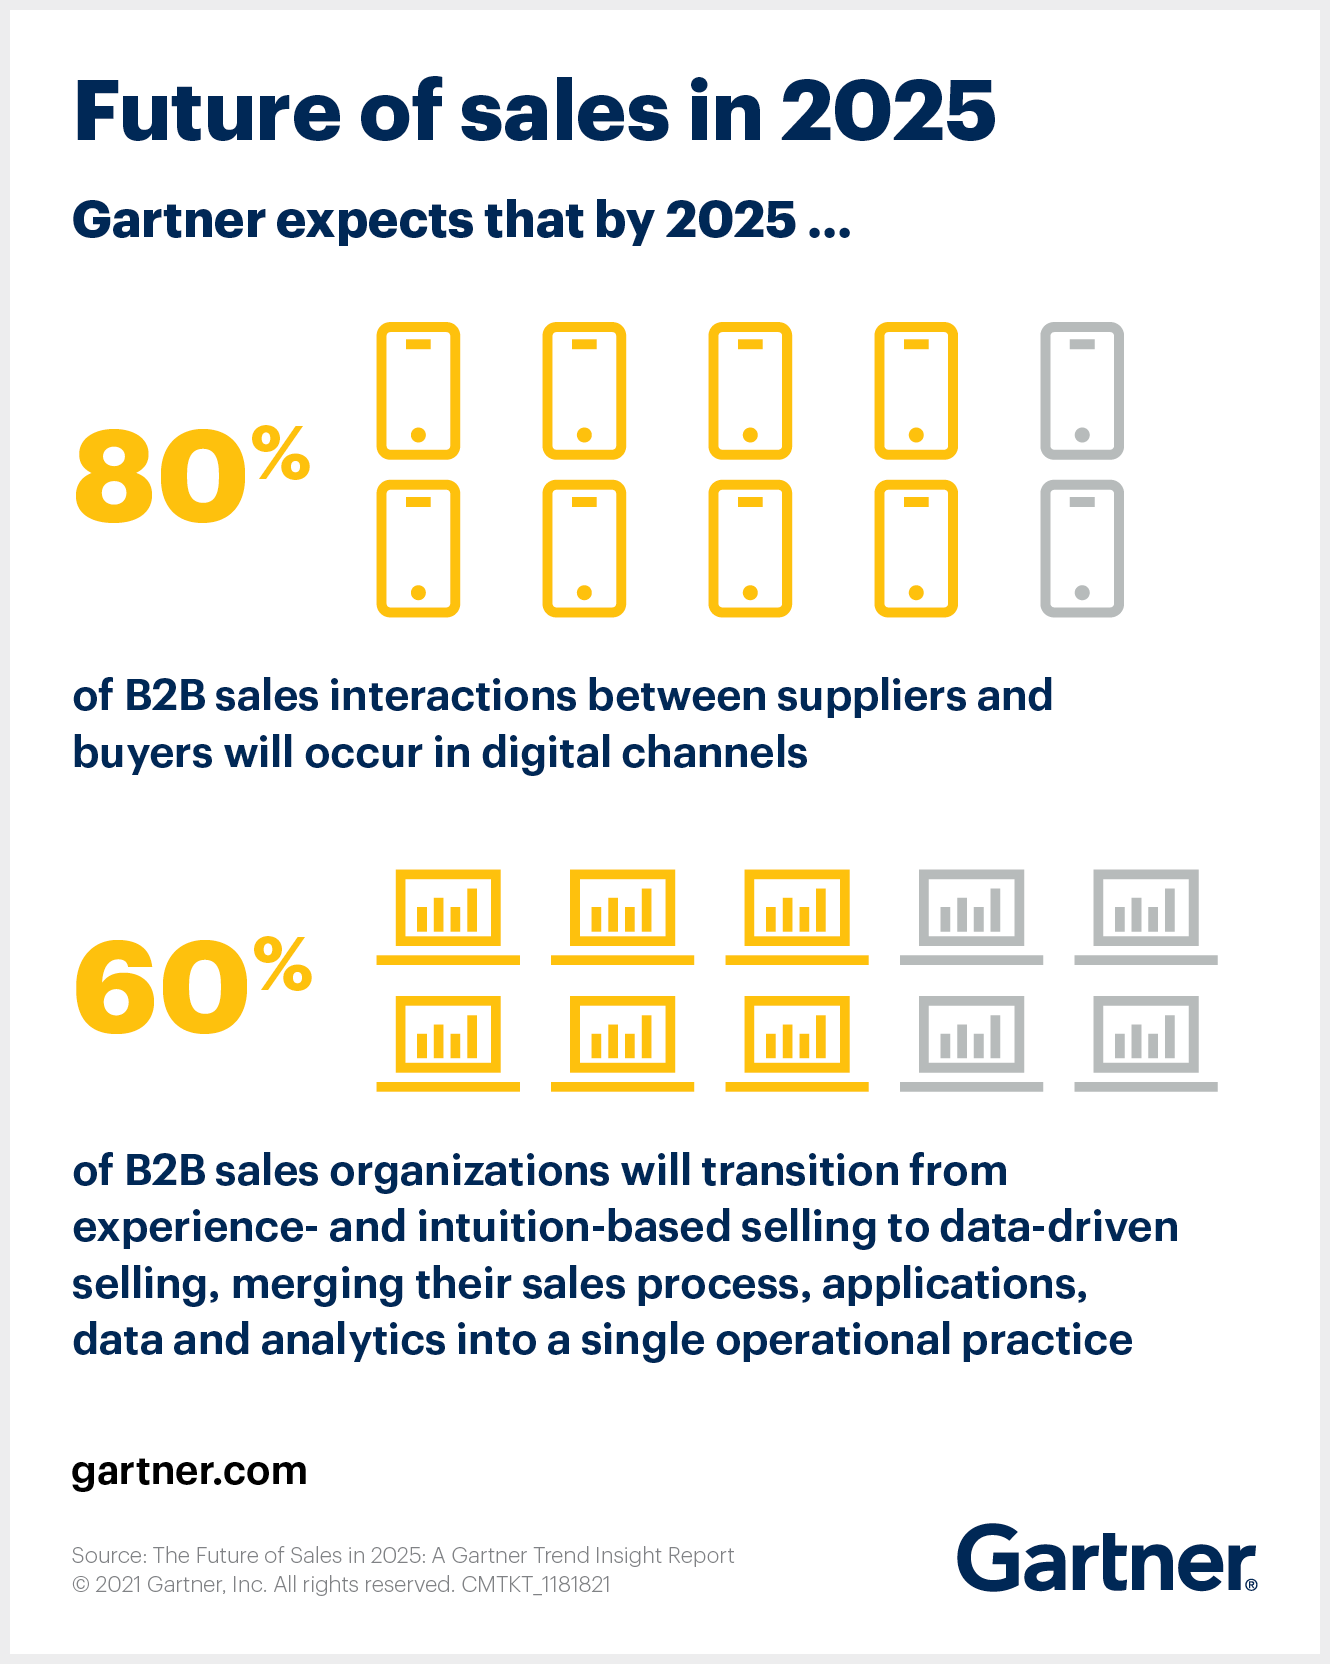 Future of B2B sales is more digital and data driven.